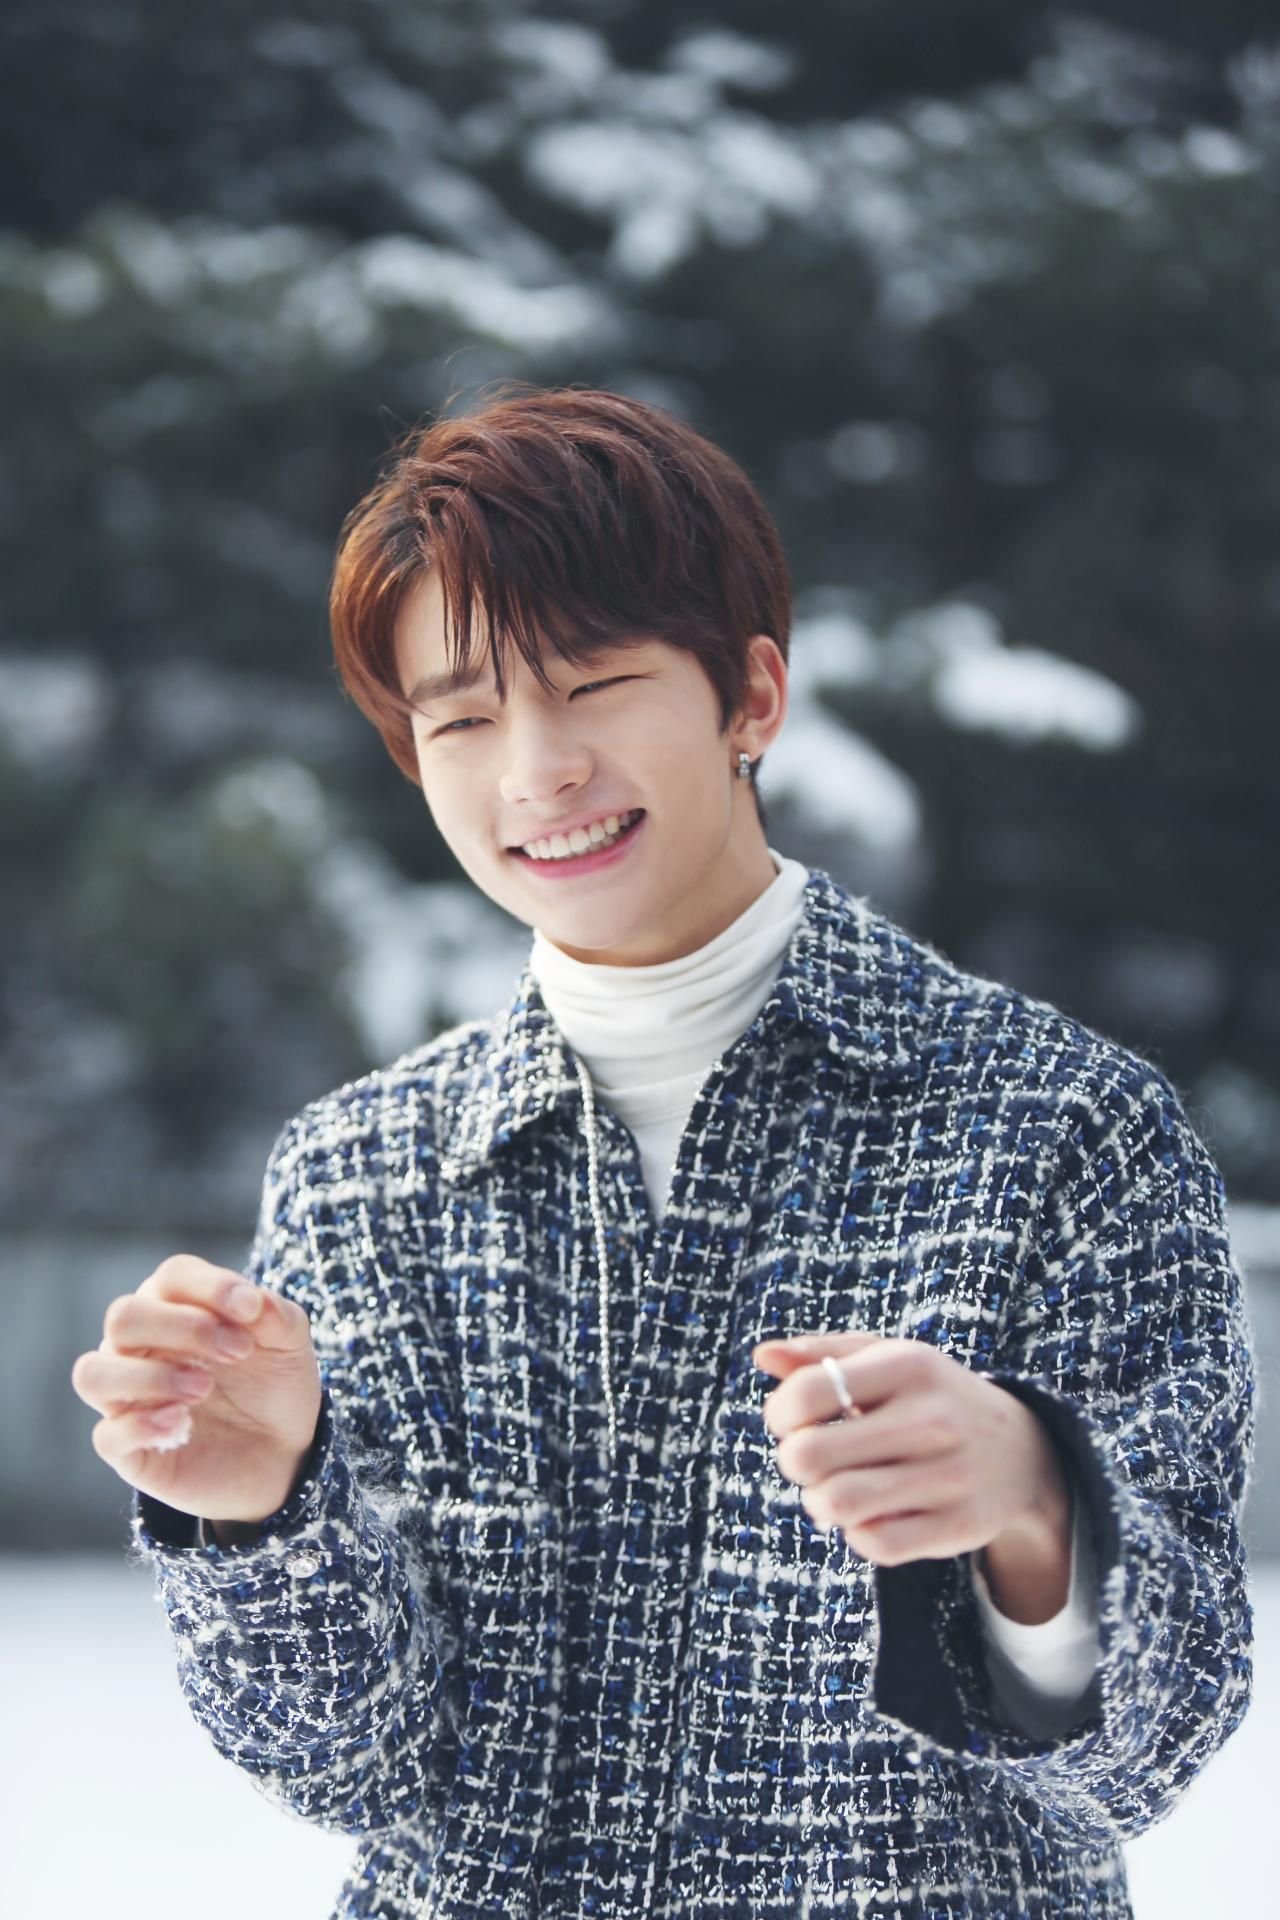 Such A Cutie Hyunjin Stray Kids Stray Kids Pinterest